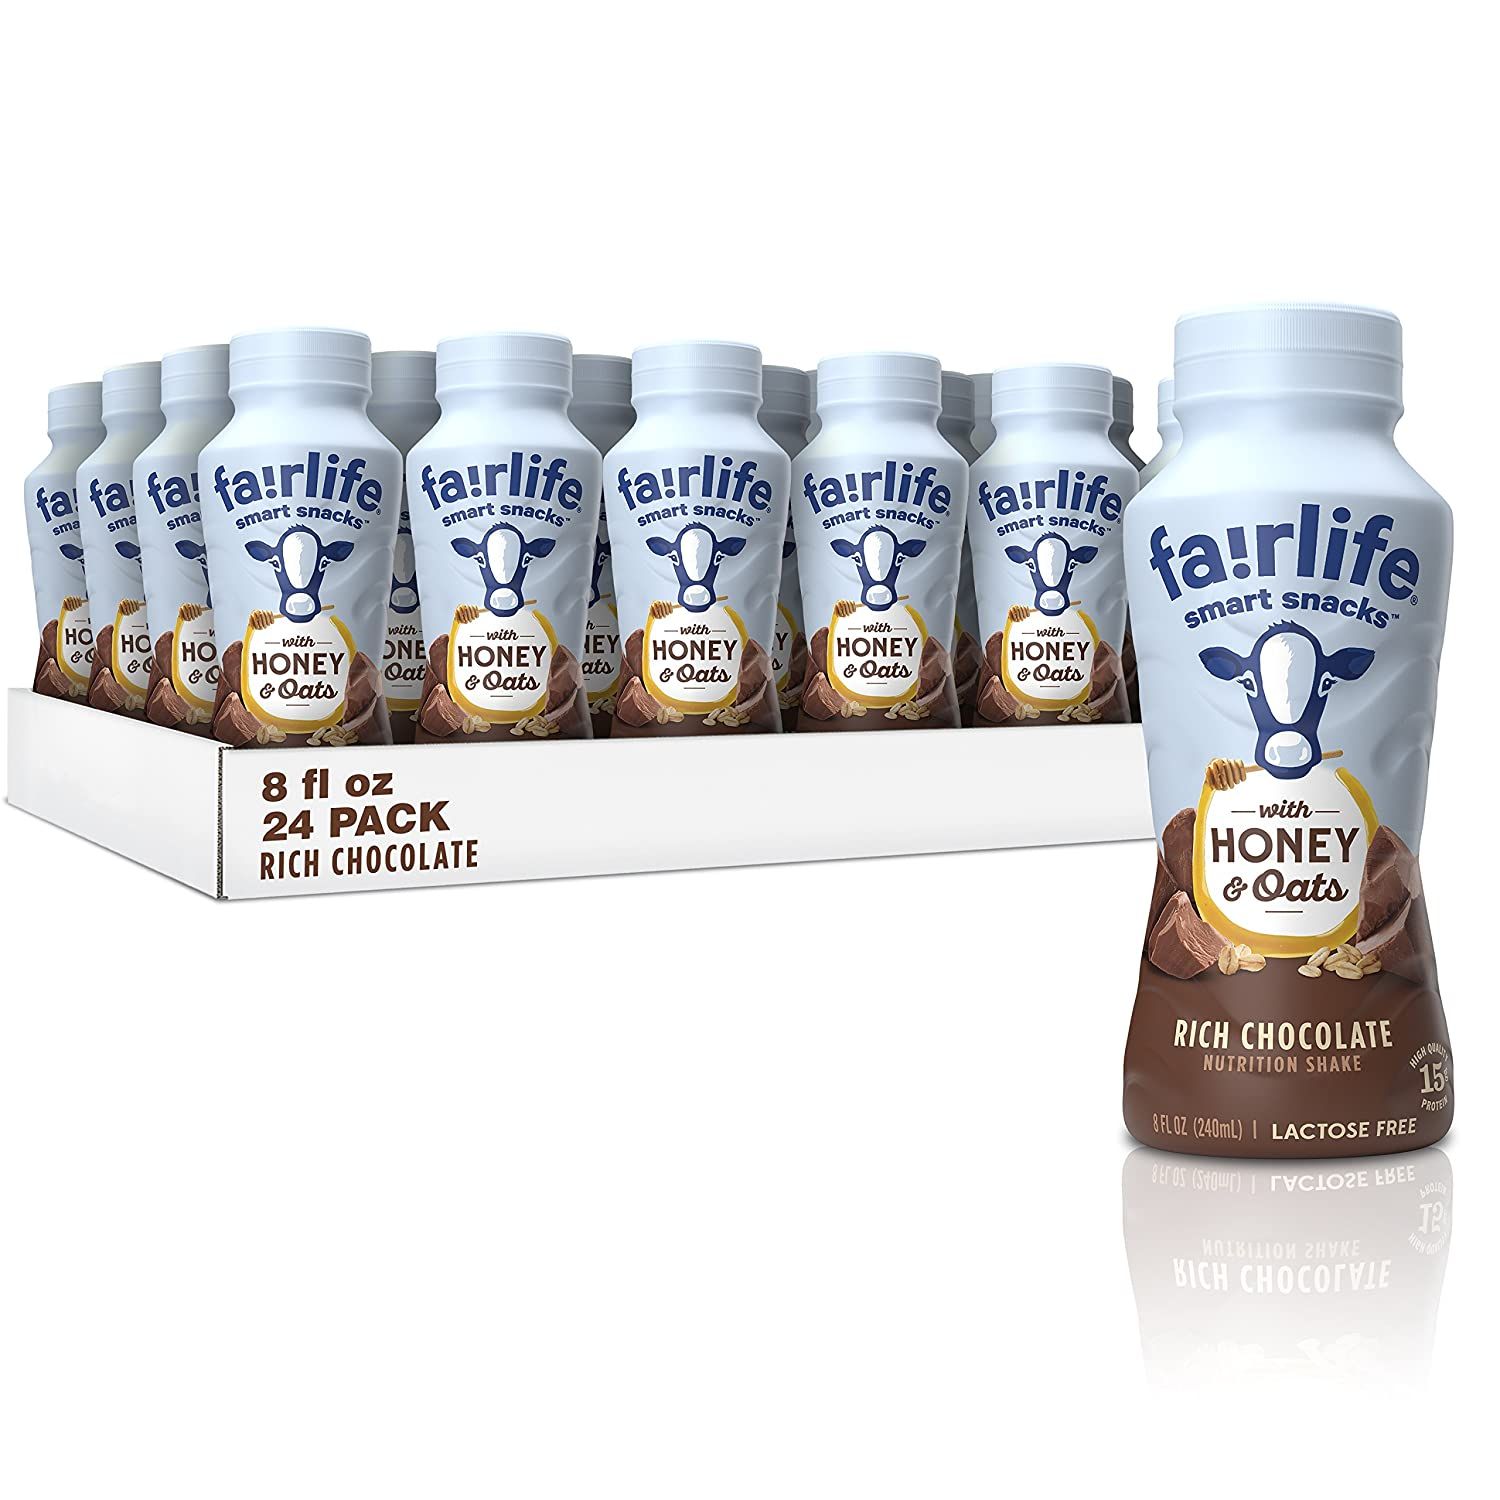 faa9b9fba87 Amazon.com : fairlife smart snacks, High Protein (15g), Lactose Free, Rich  Chocolate, 8 fl oz, 24 count : Grocery & Gourmet Food